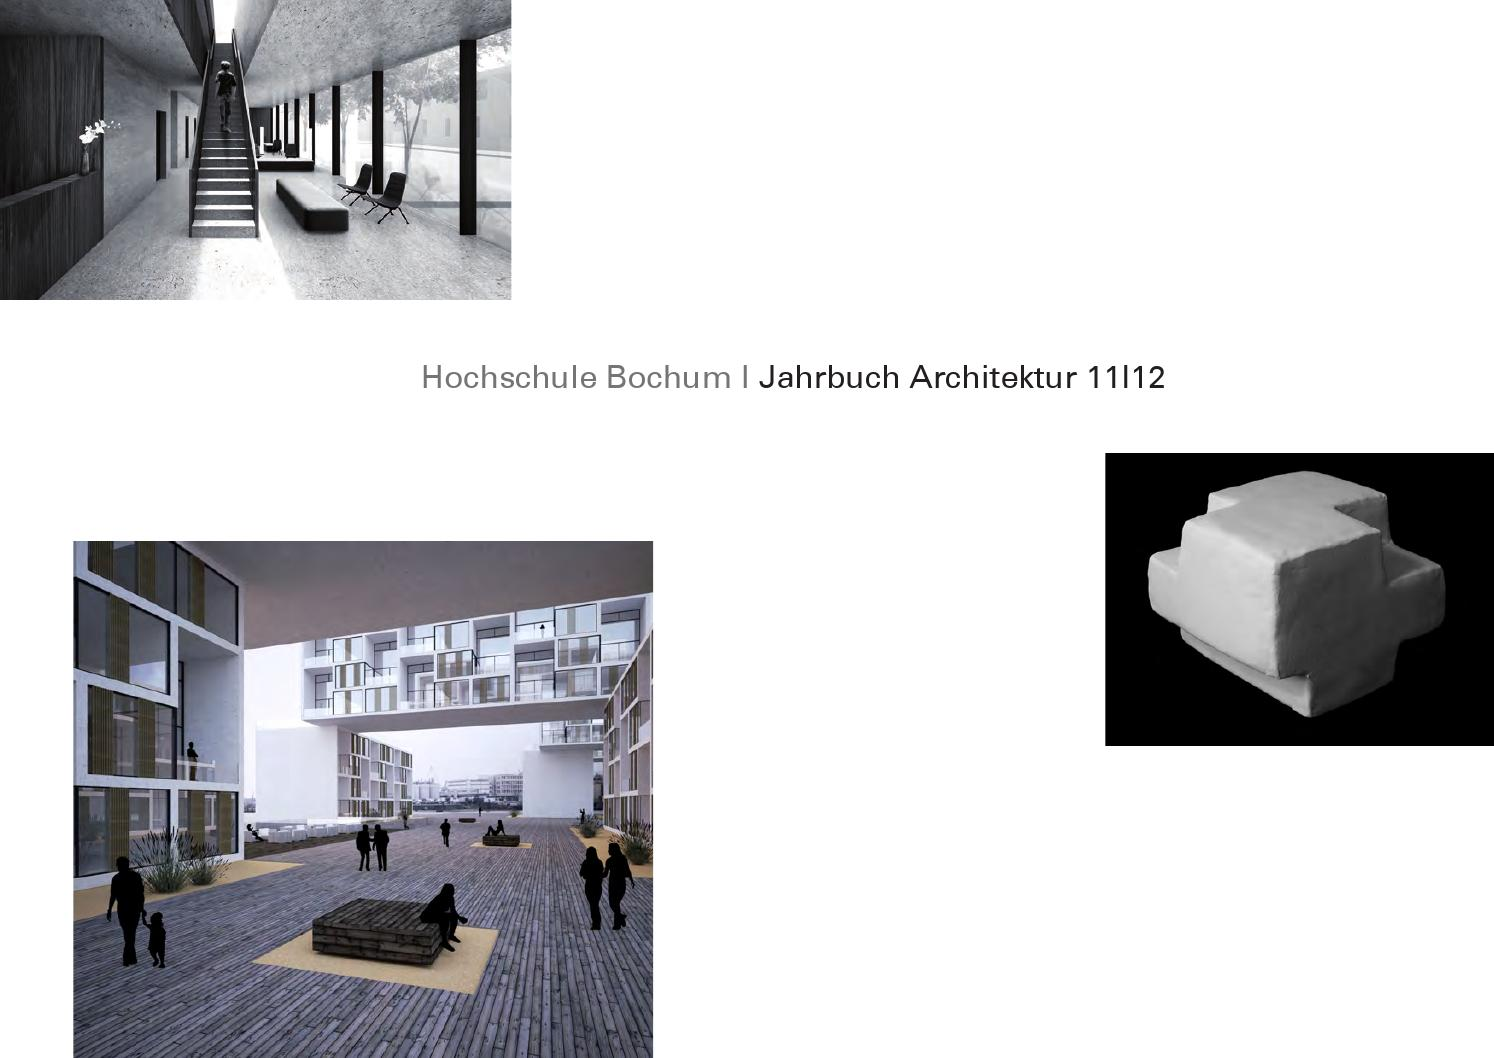 Bochum Architektur Jahrbuch Architektur Hs Bochum 2012 By Harald Gatermann Issuu